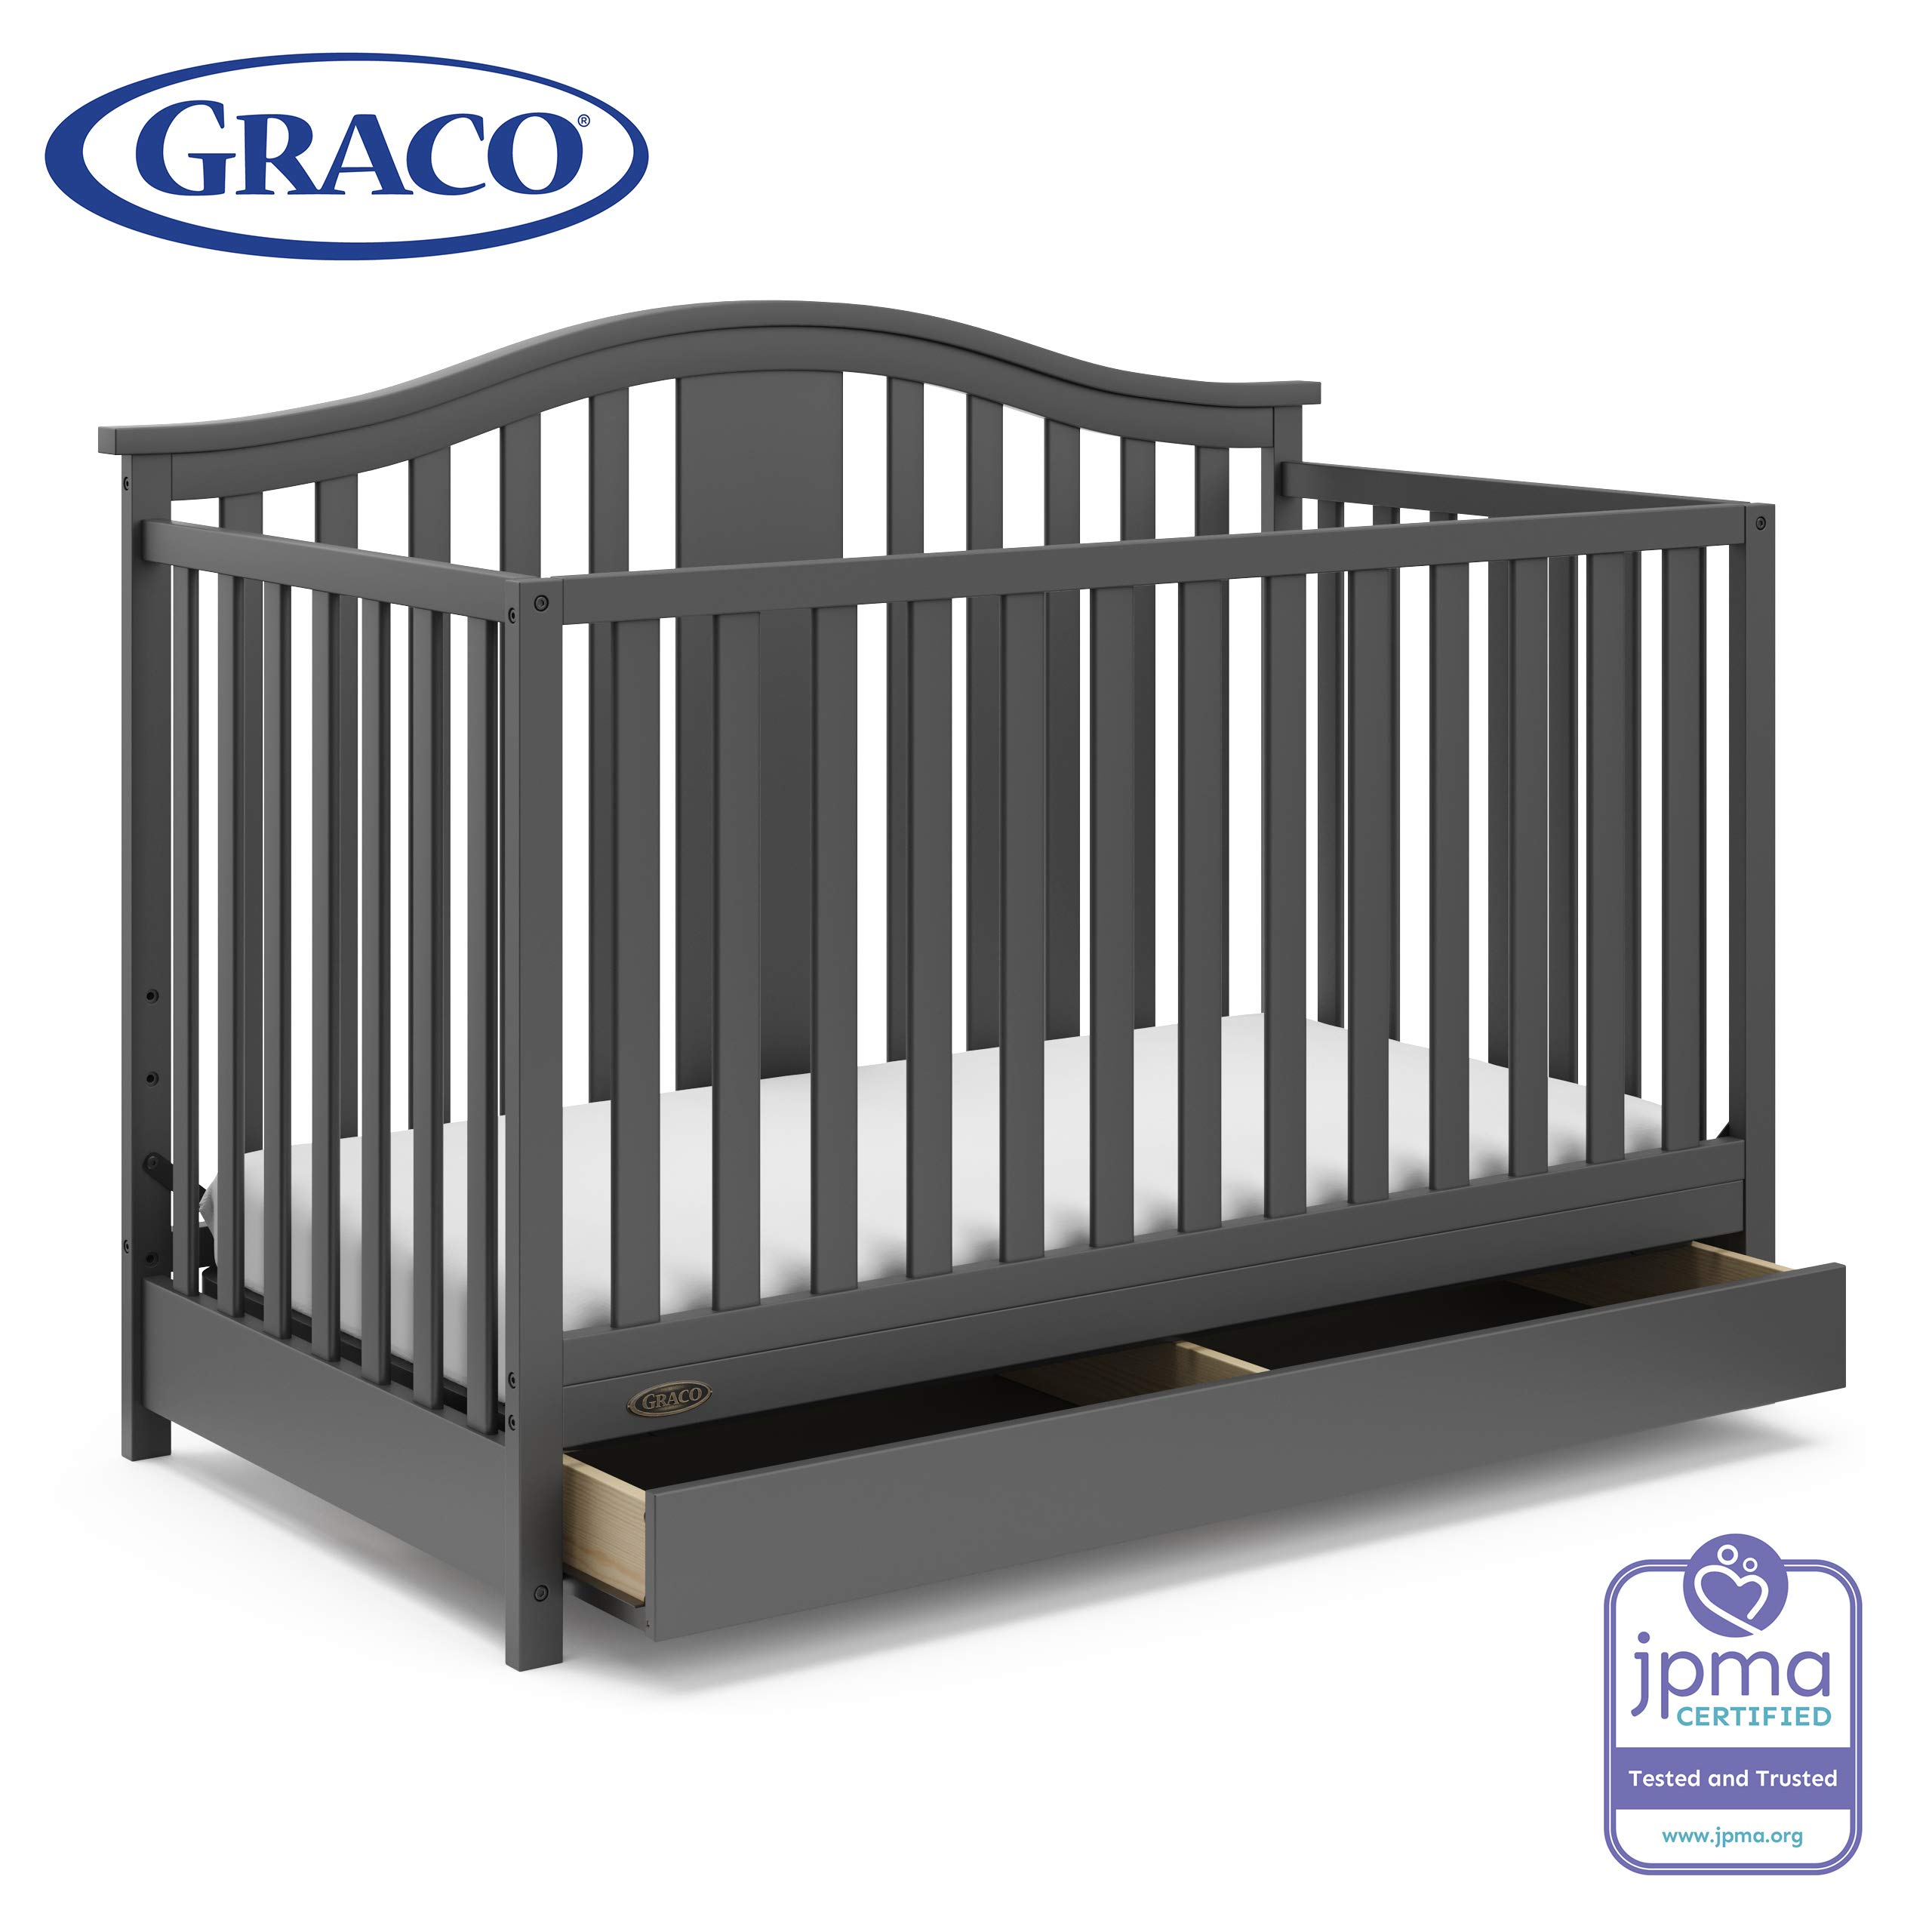 Graco Solano 4-in-1 Convertible Crib with Drawer, Easily Converts to Toddler Bed Day Bed or Full Bed, Three Position Adjustable Height Mattress, Assembly Required (Mattress Not Included), Gray by Storkcraft